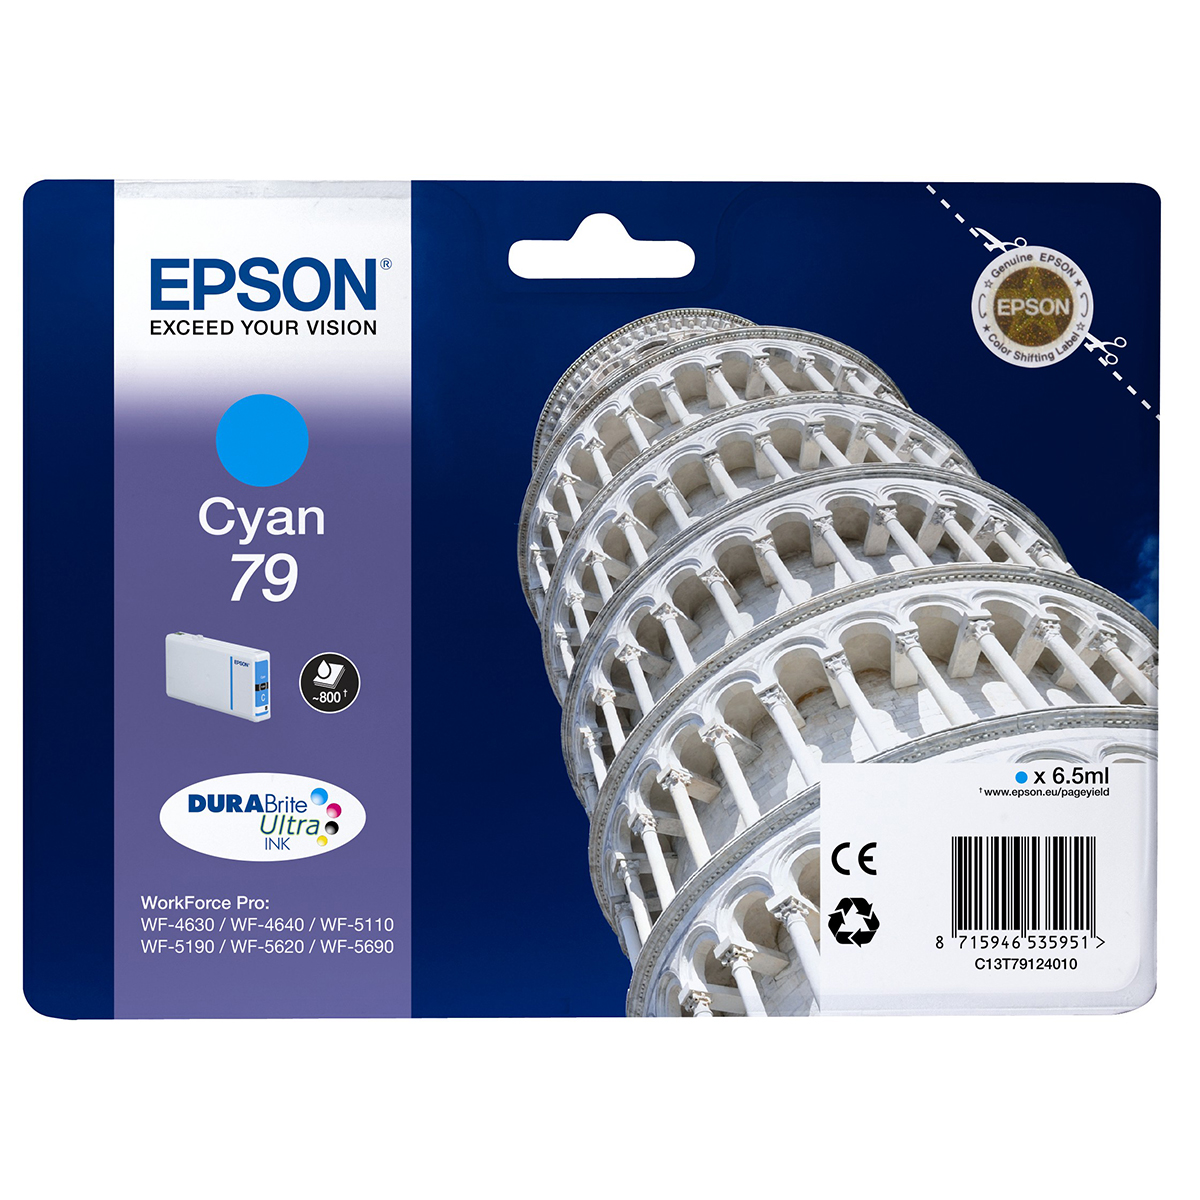 Epson 79 Durabrite Ink Cartridge Cyan